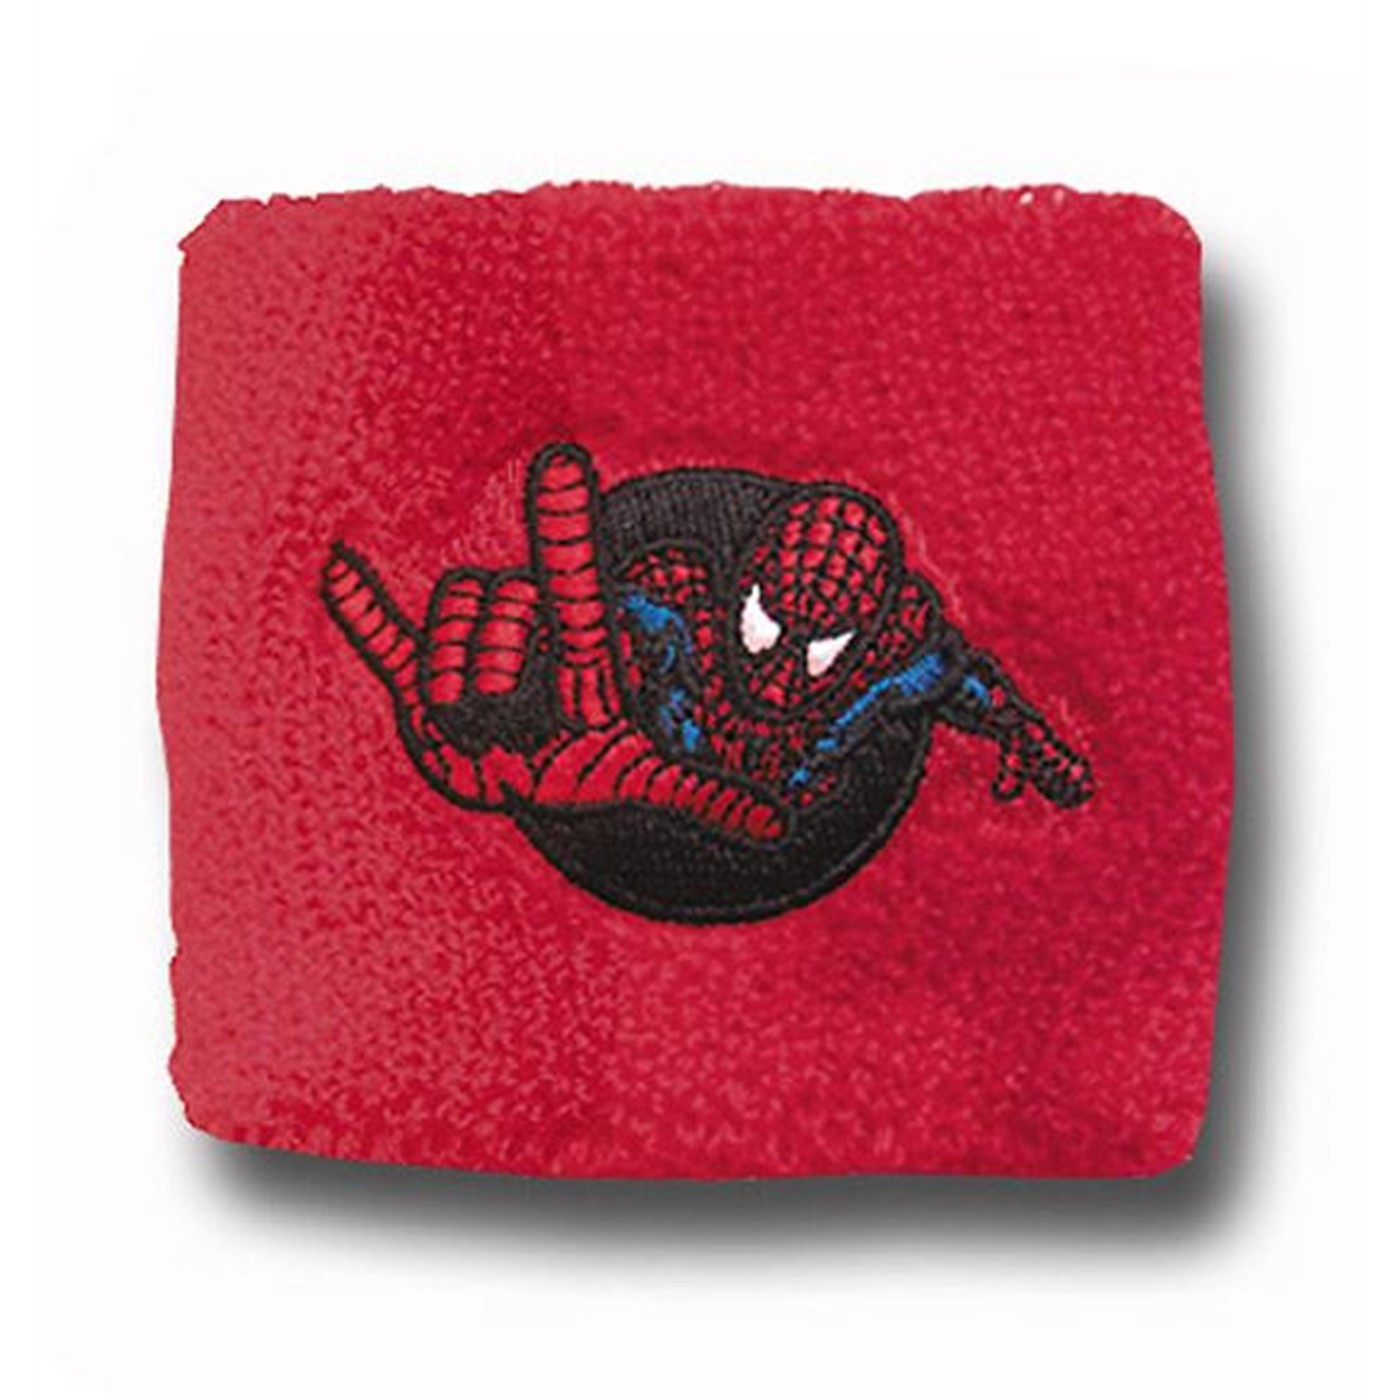 Spiderman Red Terrycloth Wristband